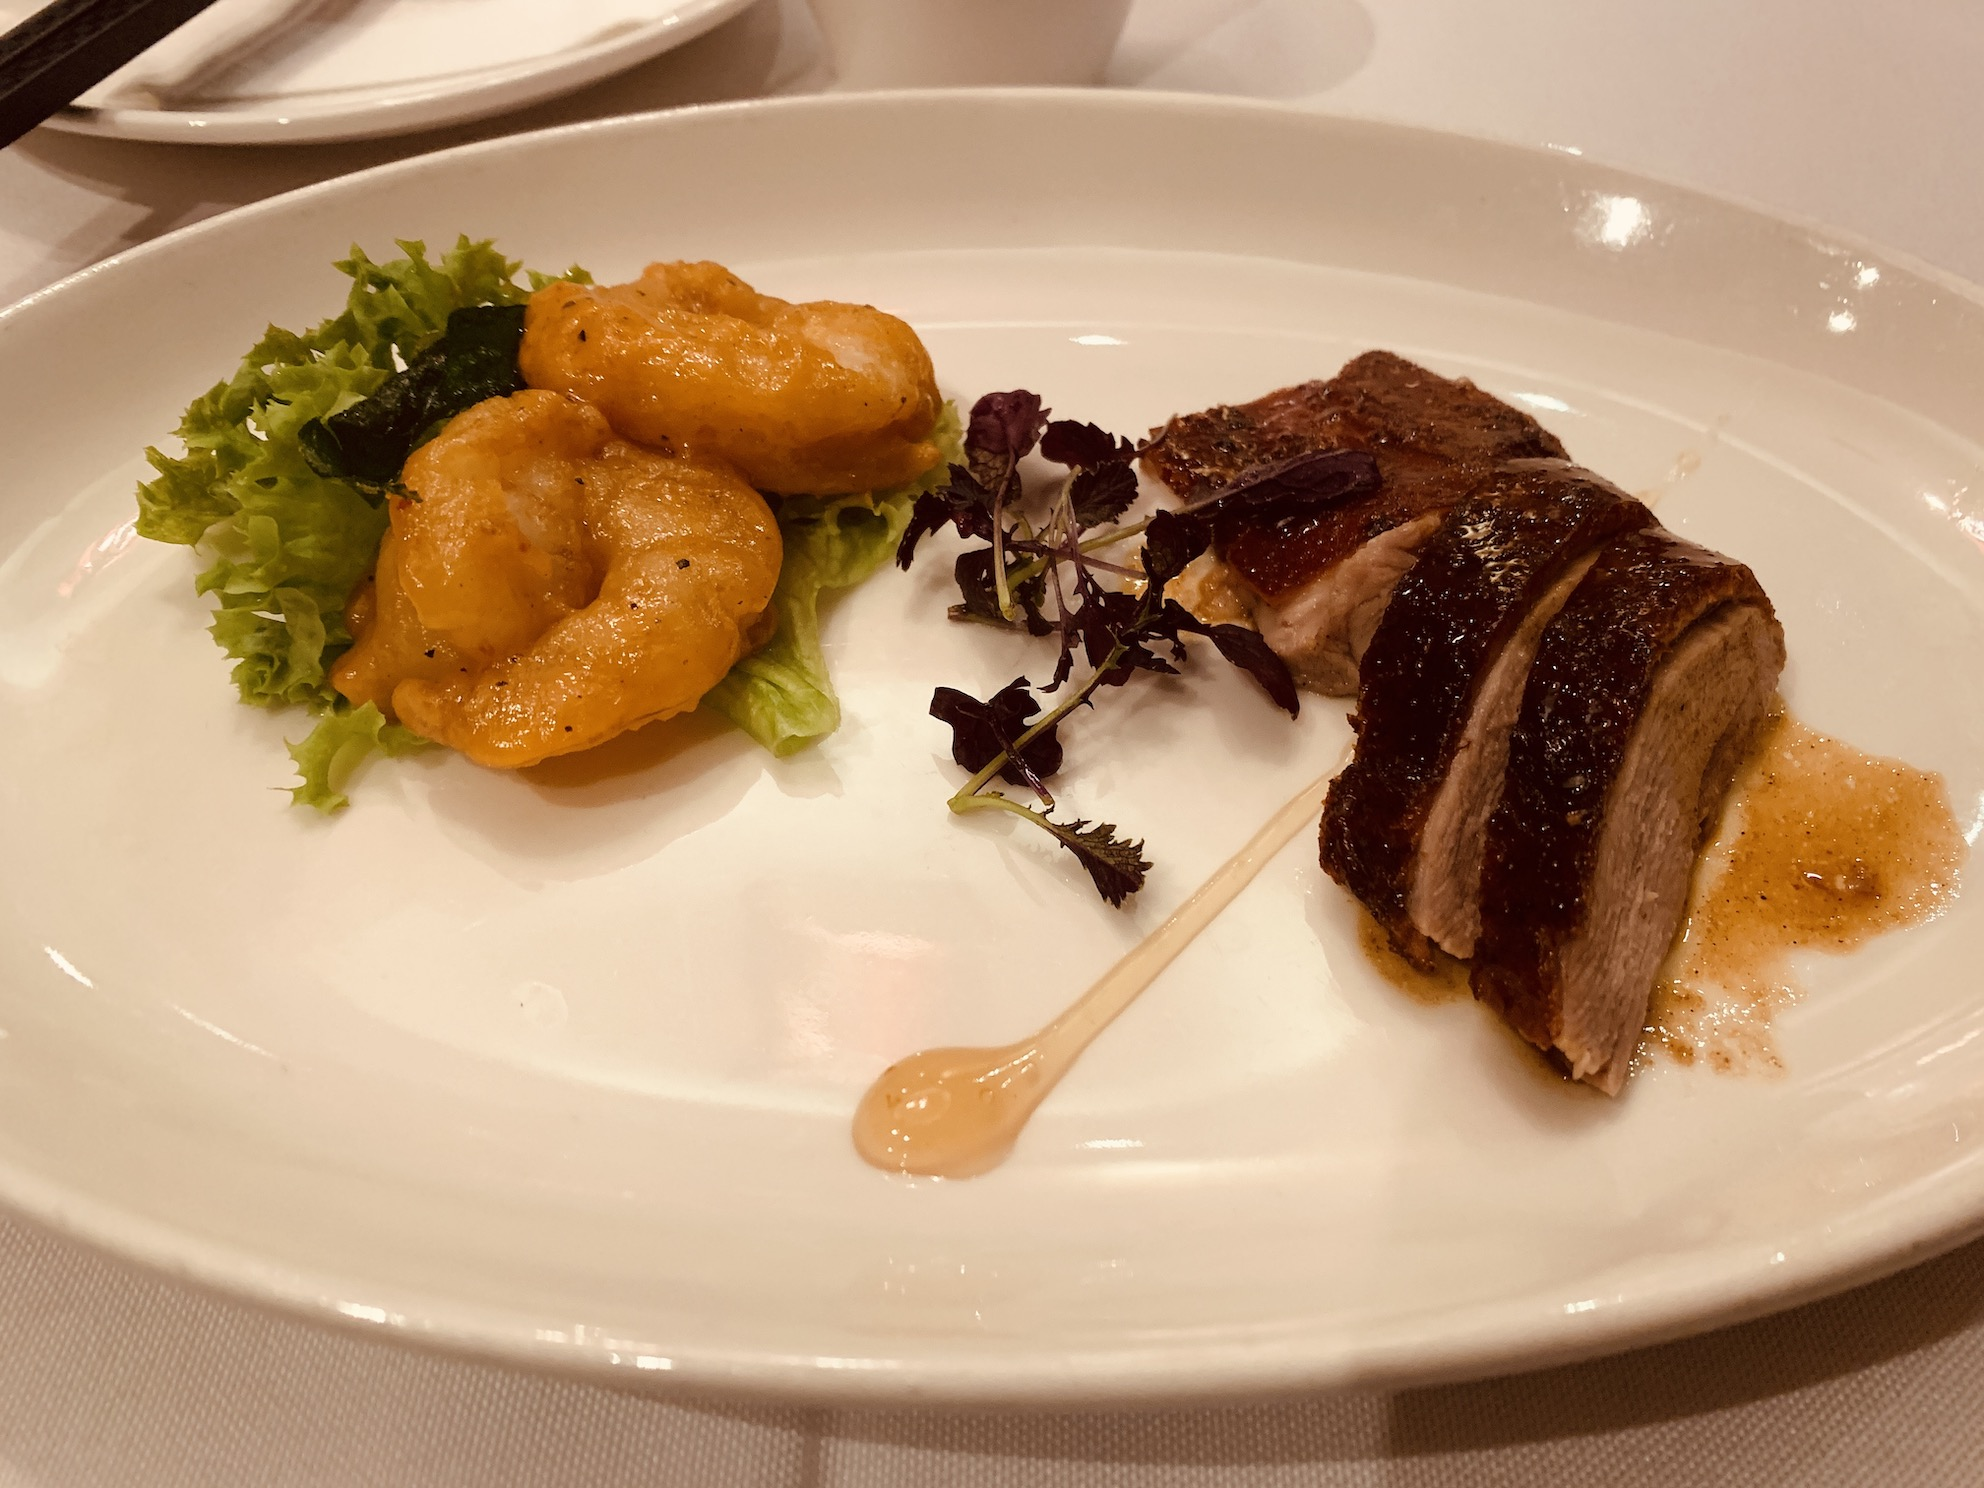 Peach Garden (Chinatown Point) - Roasted Crispy Duck accompanied with Fried Prawn and Mongolian Sauce